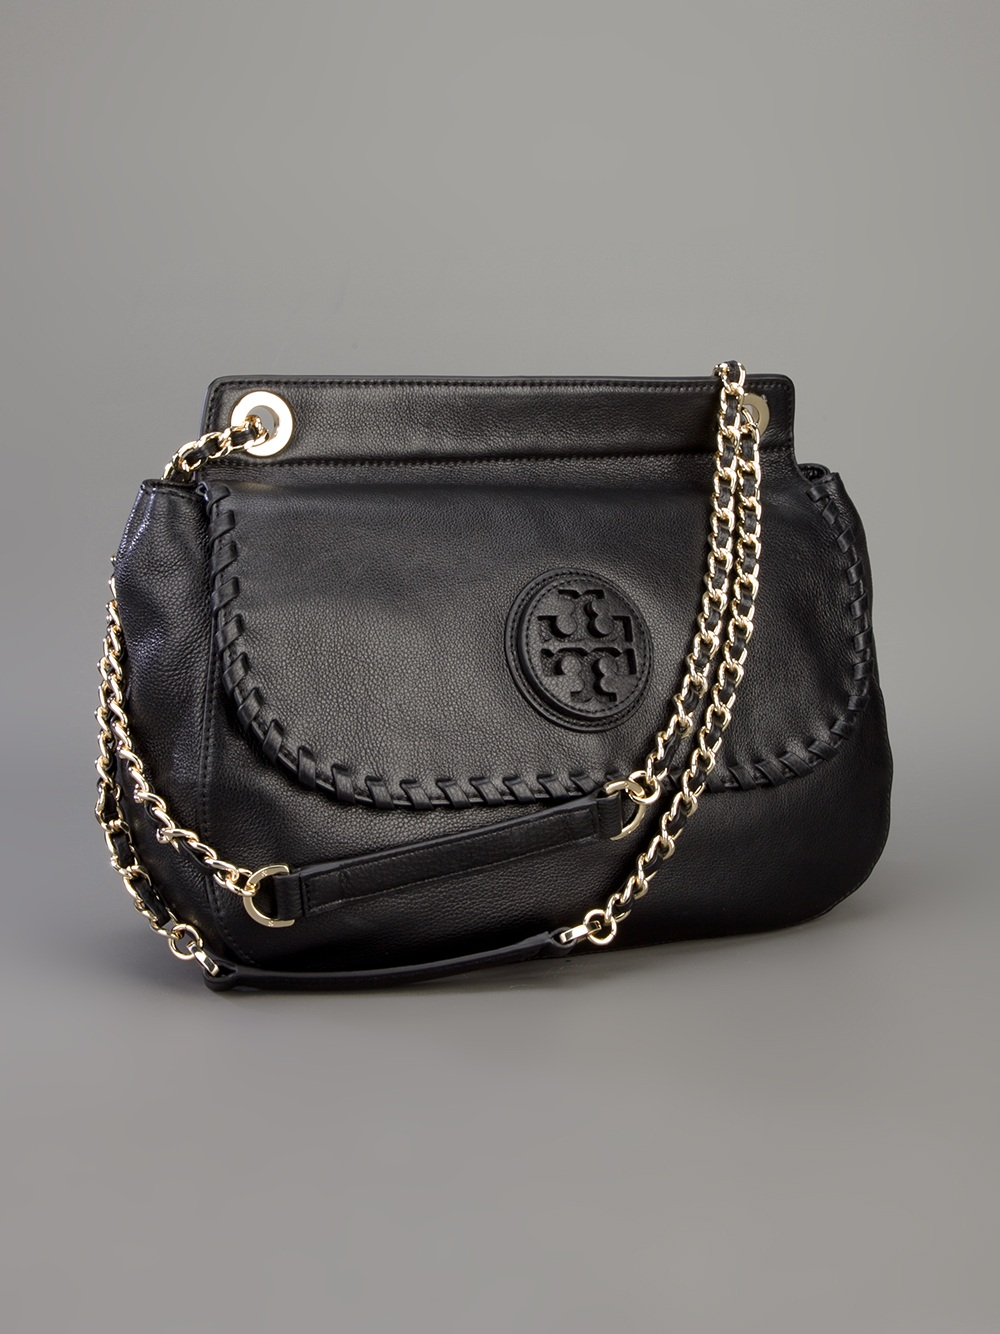 5269f48f27a1 Lyst - Tory Burch Marion Marion Saddle Bag in Black